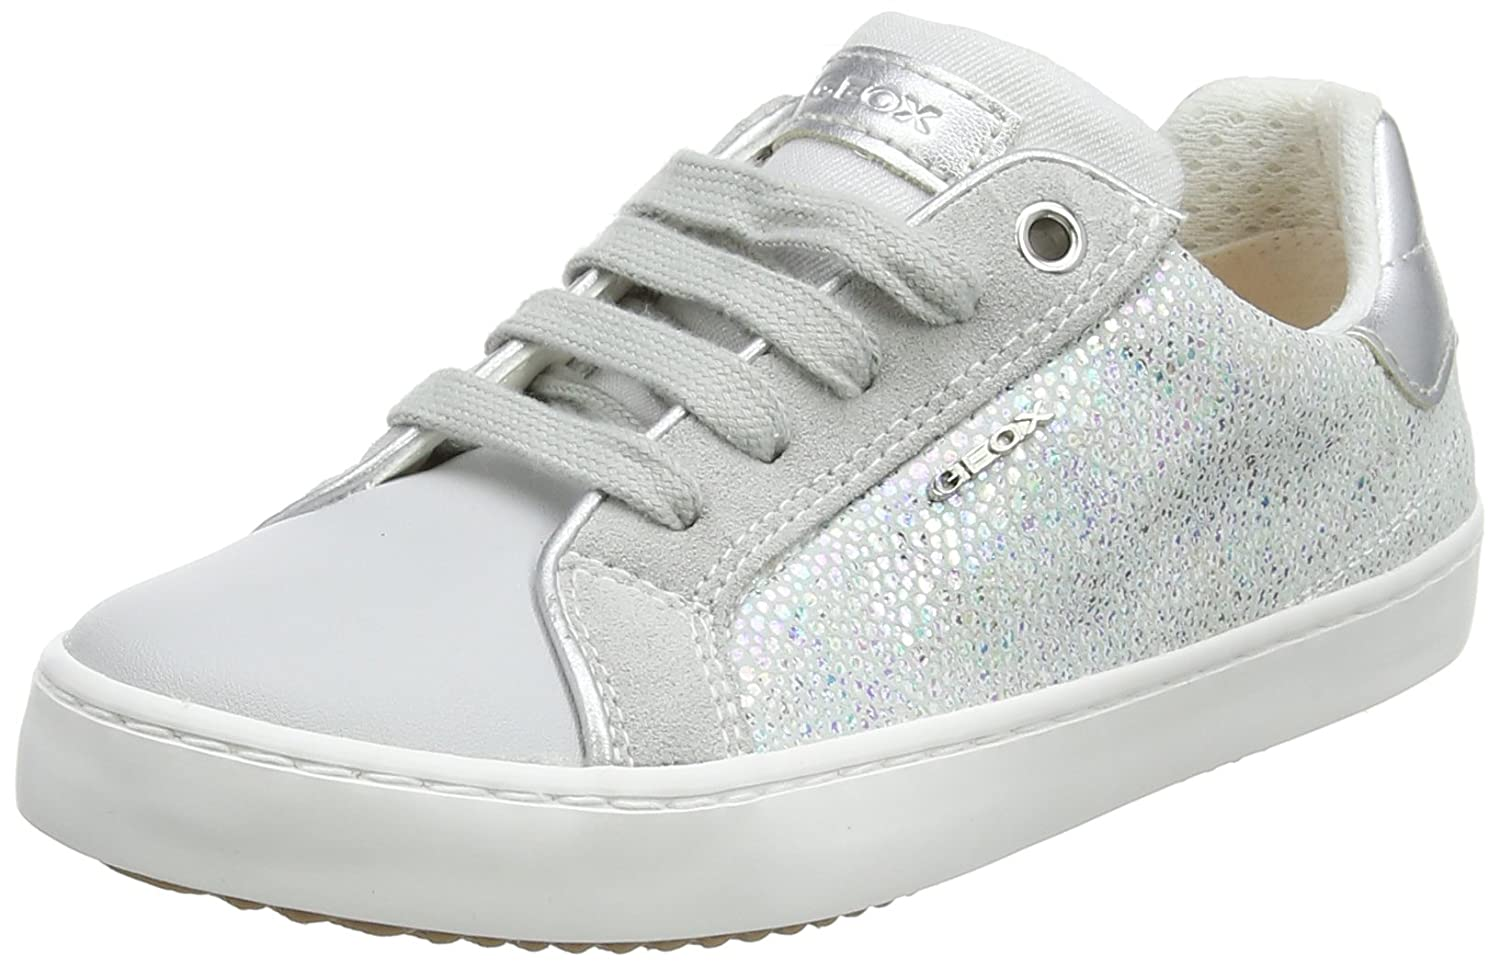 Geox J Kilwi J, Baskets Basses Fille